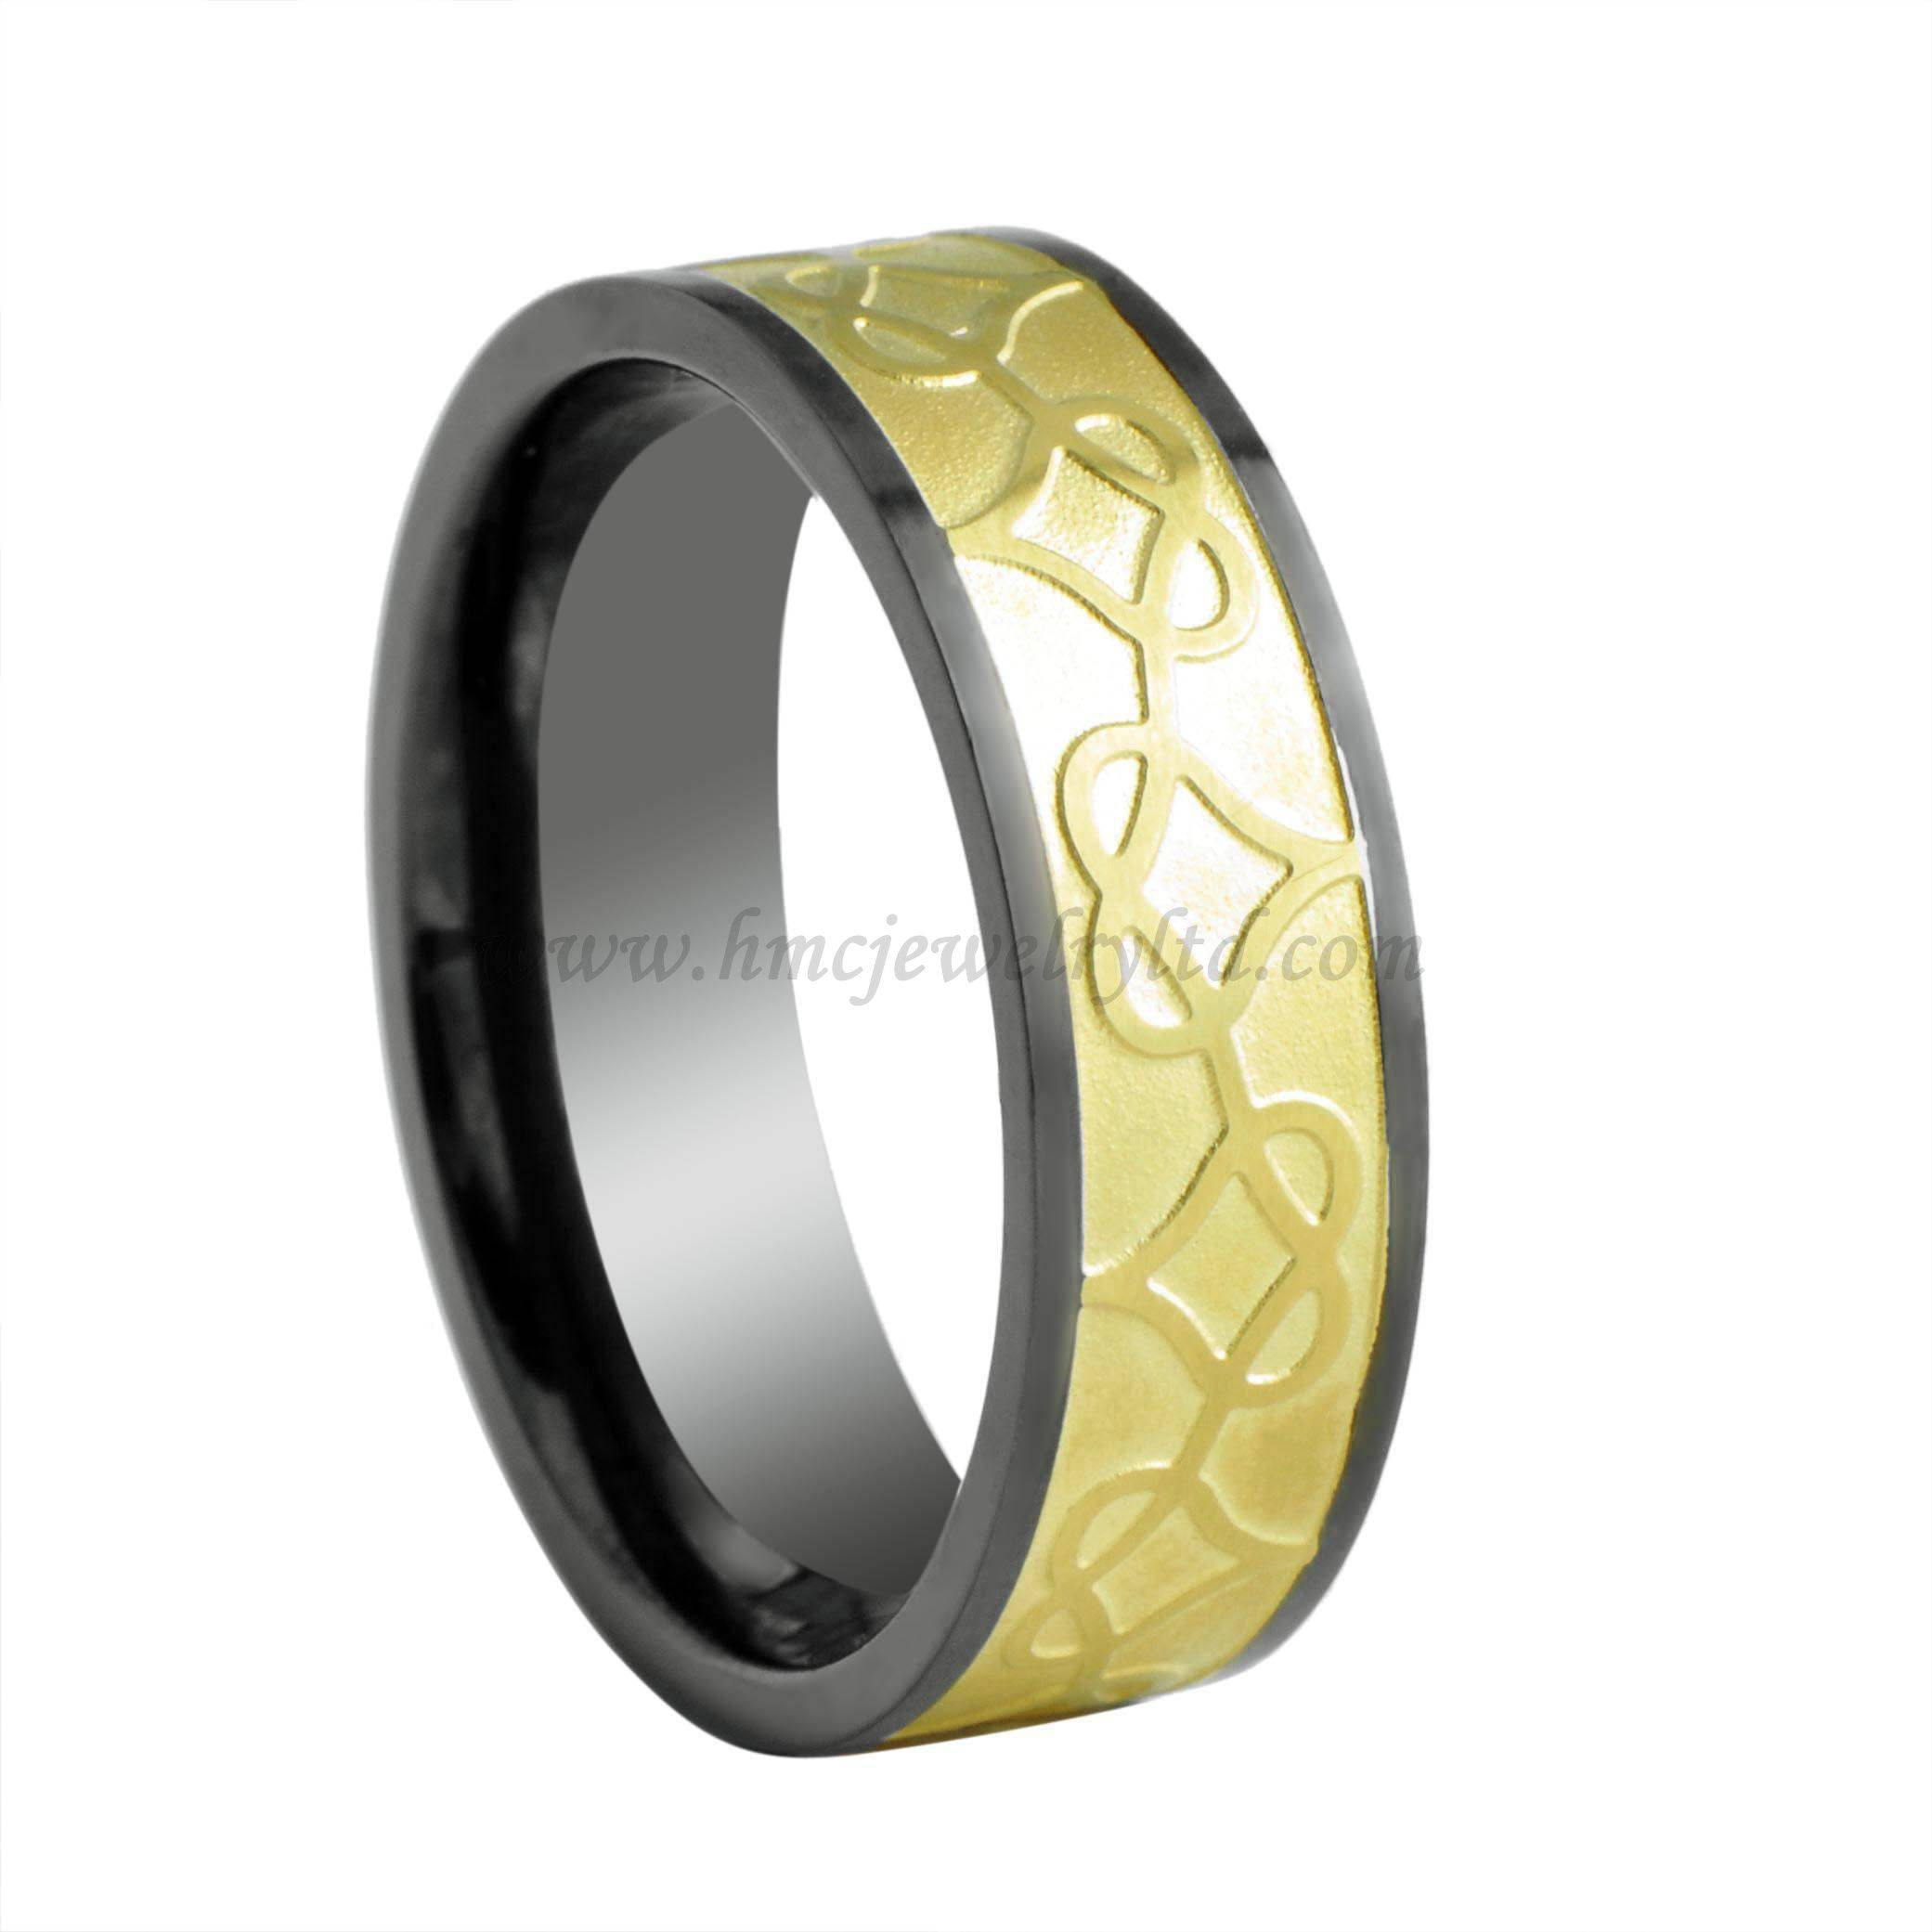 "Black & Gold Plated Titanium Rings Without Stones, Gold ""Heart Linked To Heart"" Ring Jewelry"